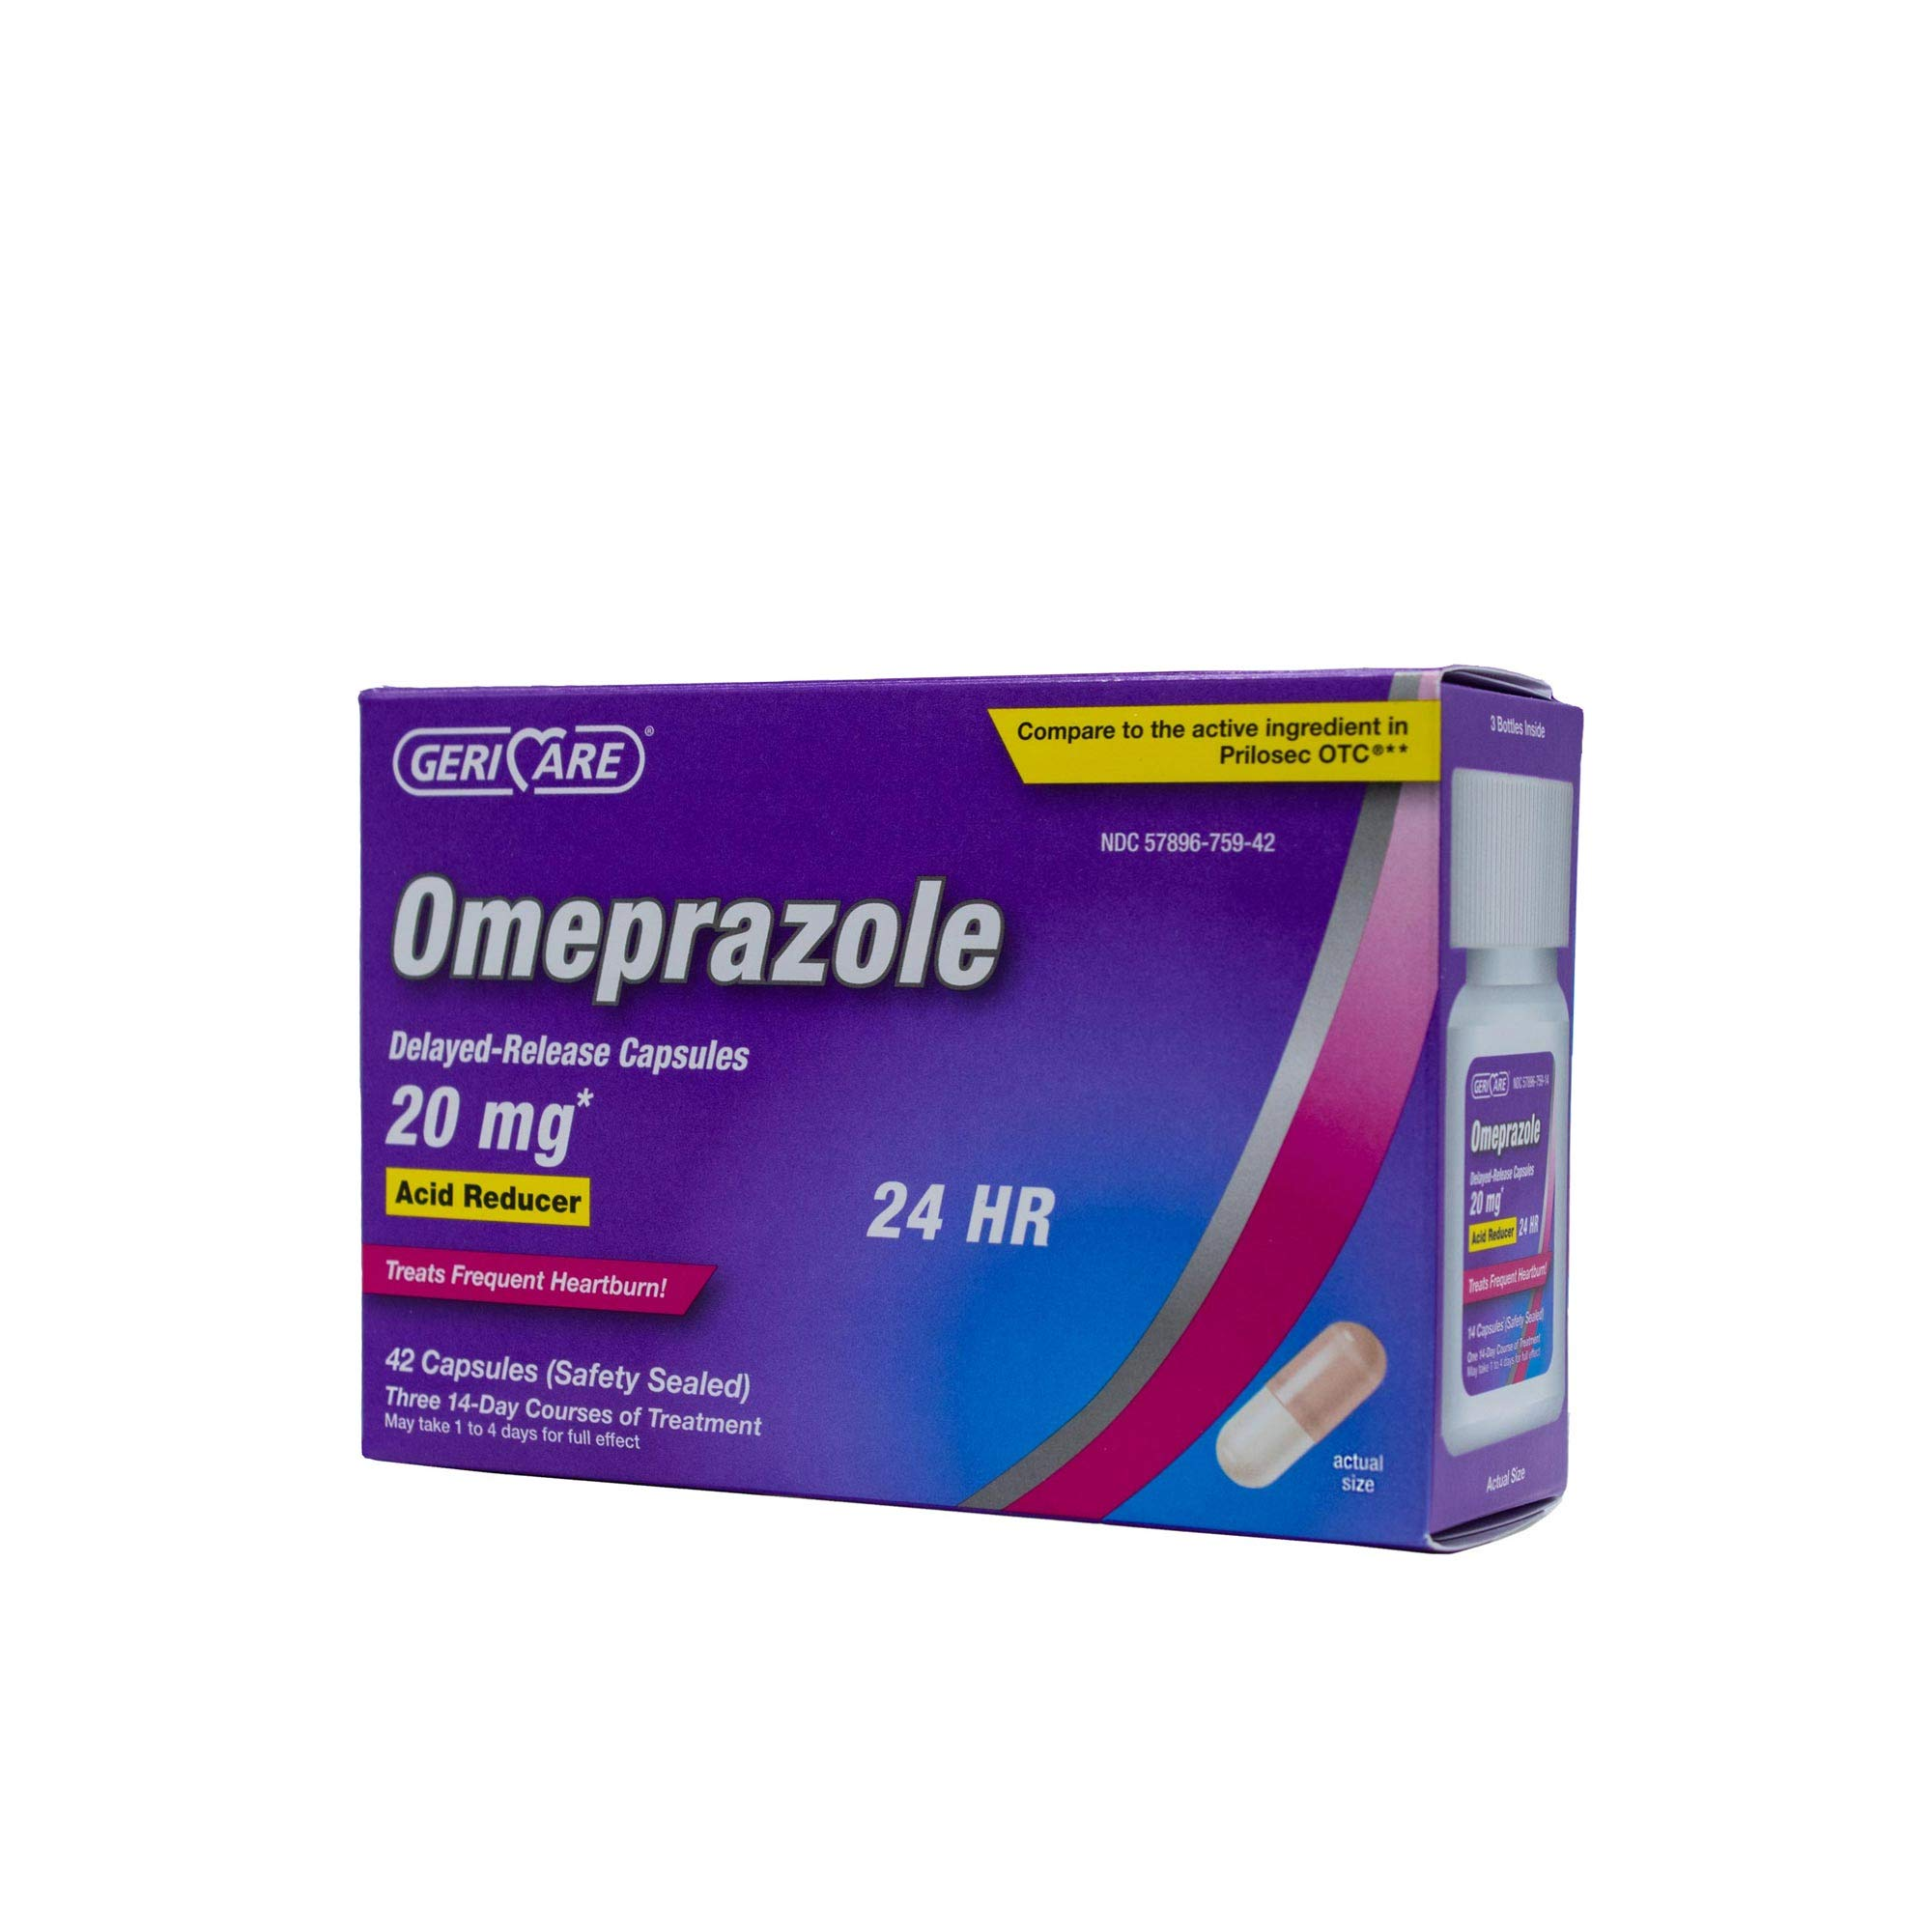 GeriCare Omeprazole Delayed Release Capsules 20 mg, Acid Reducer, Treats Heartburn, 42 Count